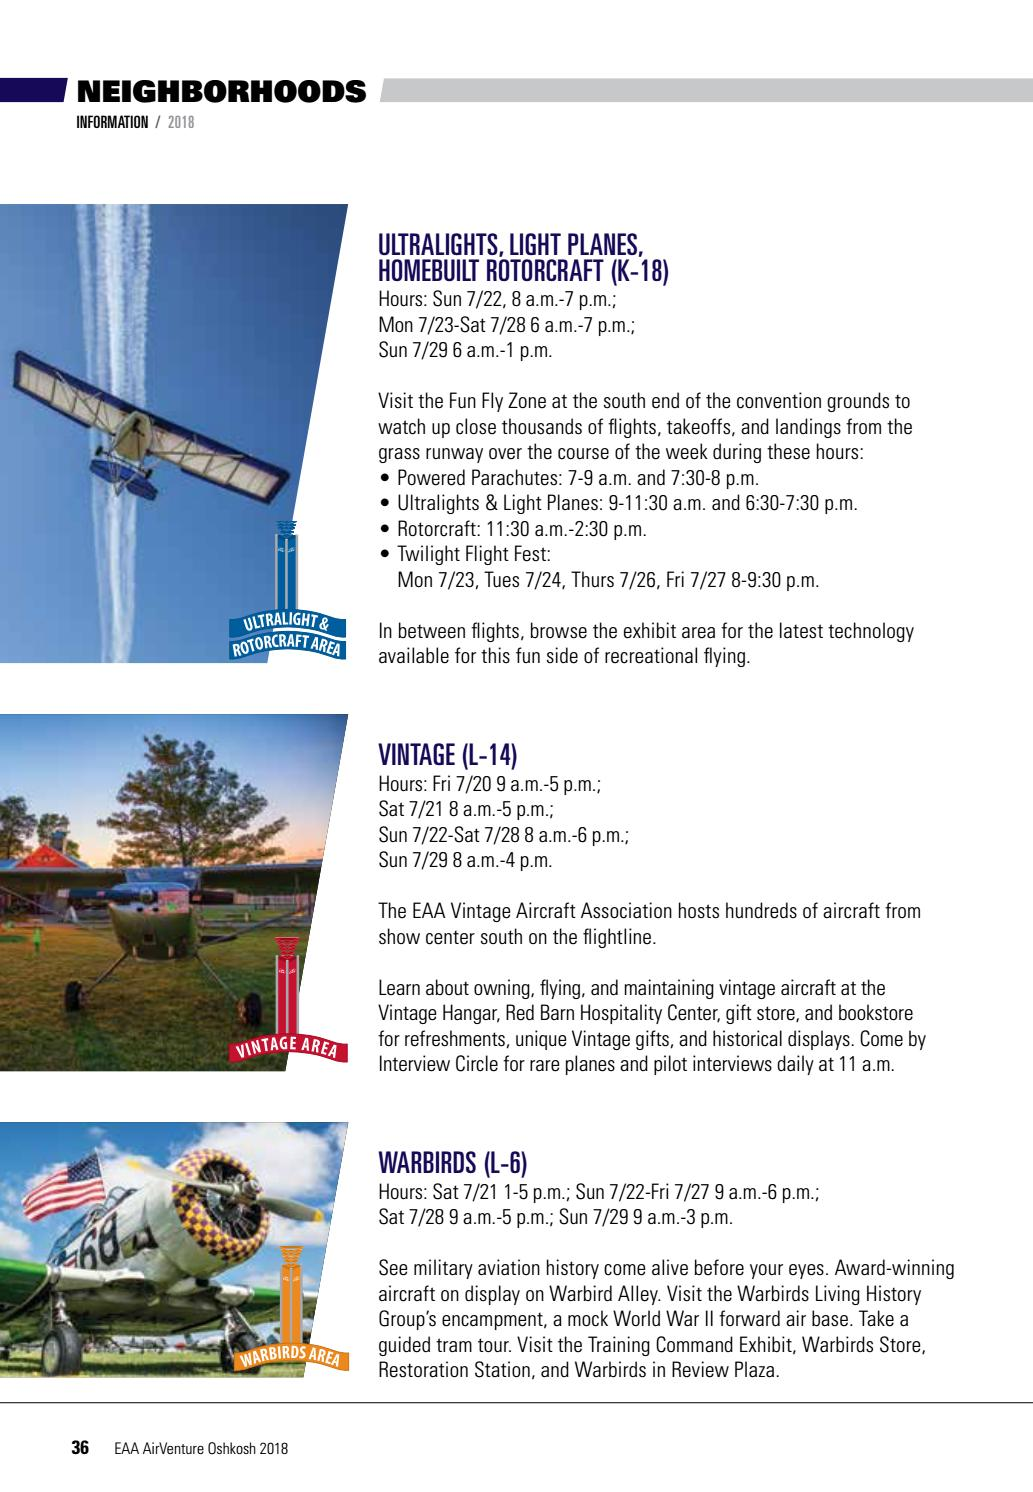 Official Visitor and Camper's Guide - AirVenture 2018 by EAA